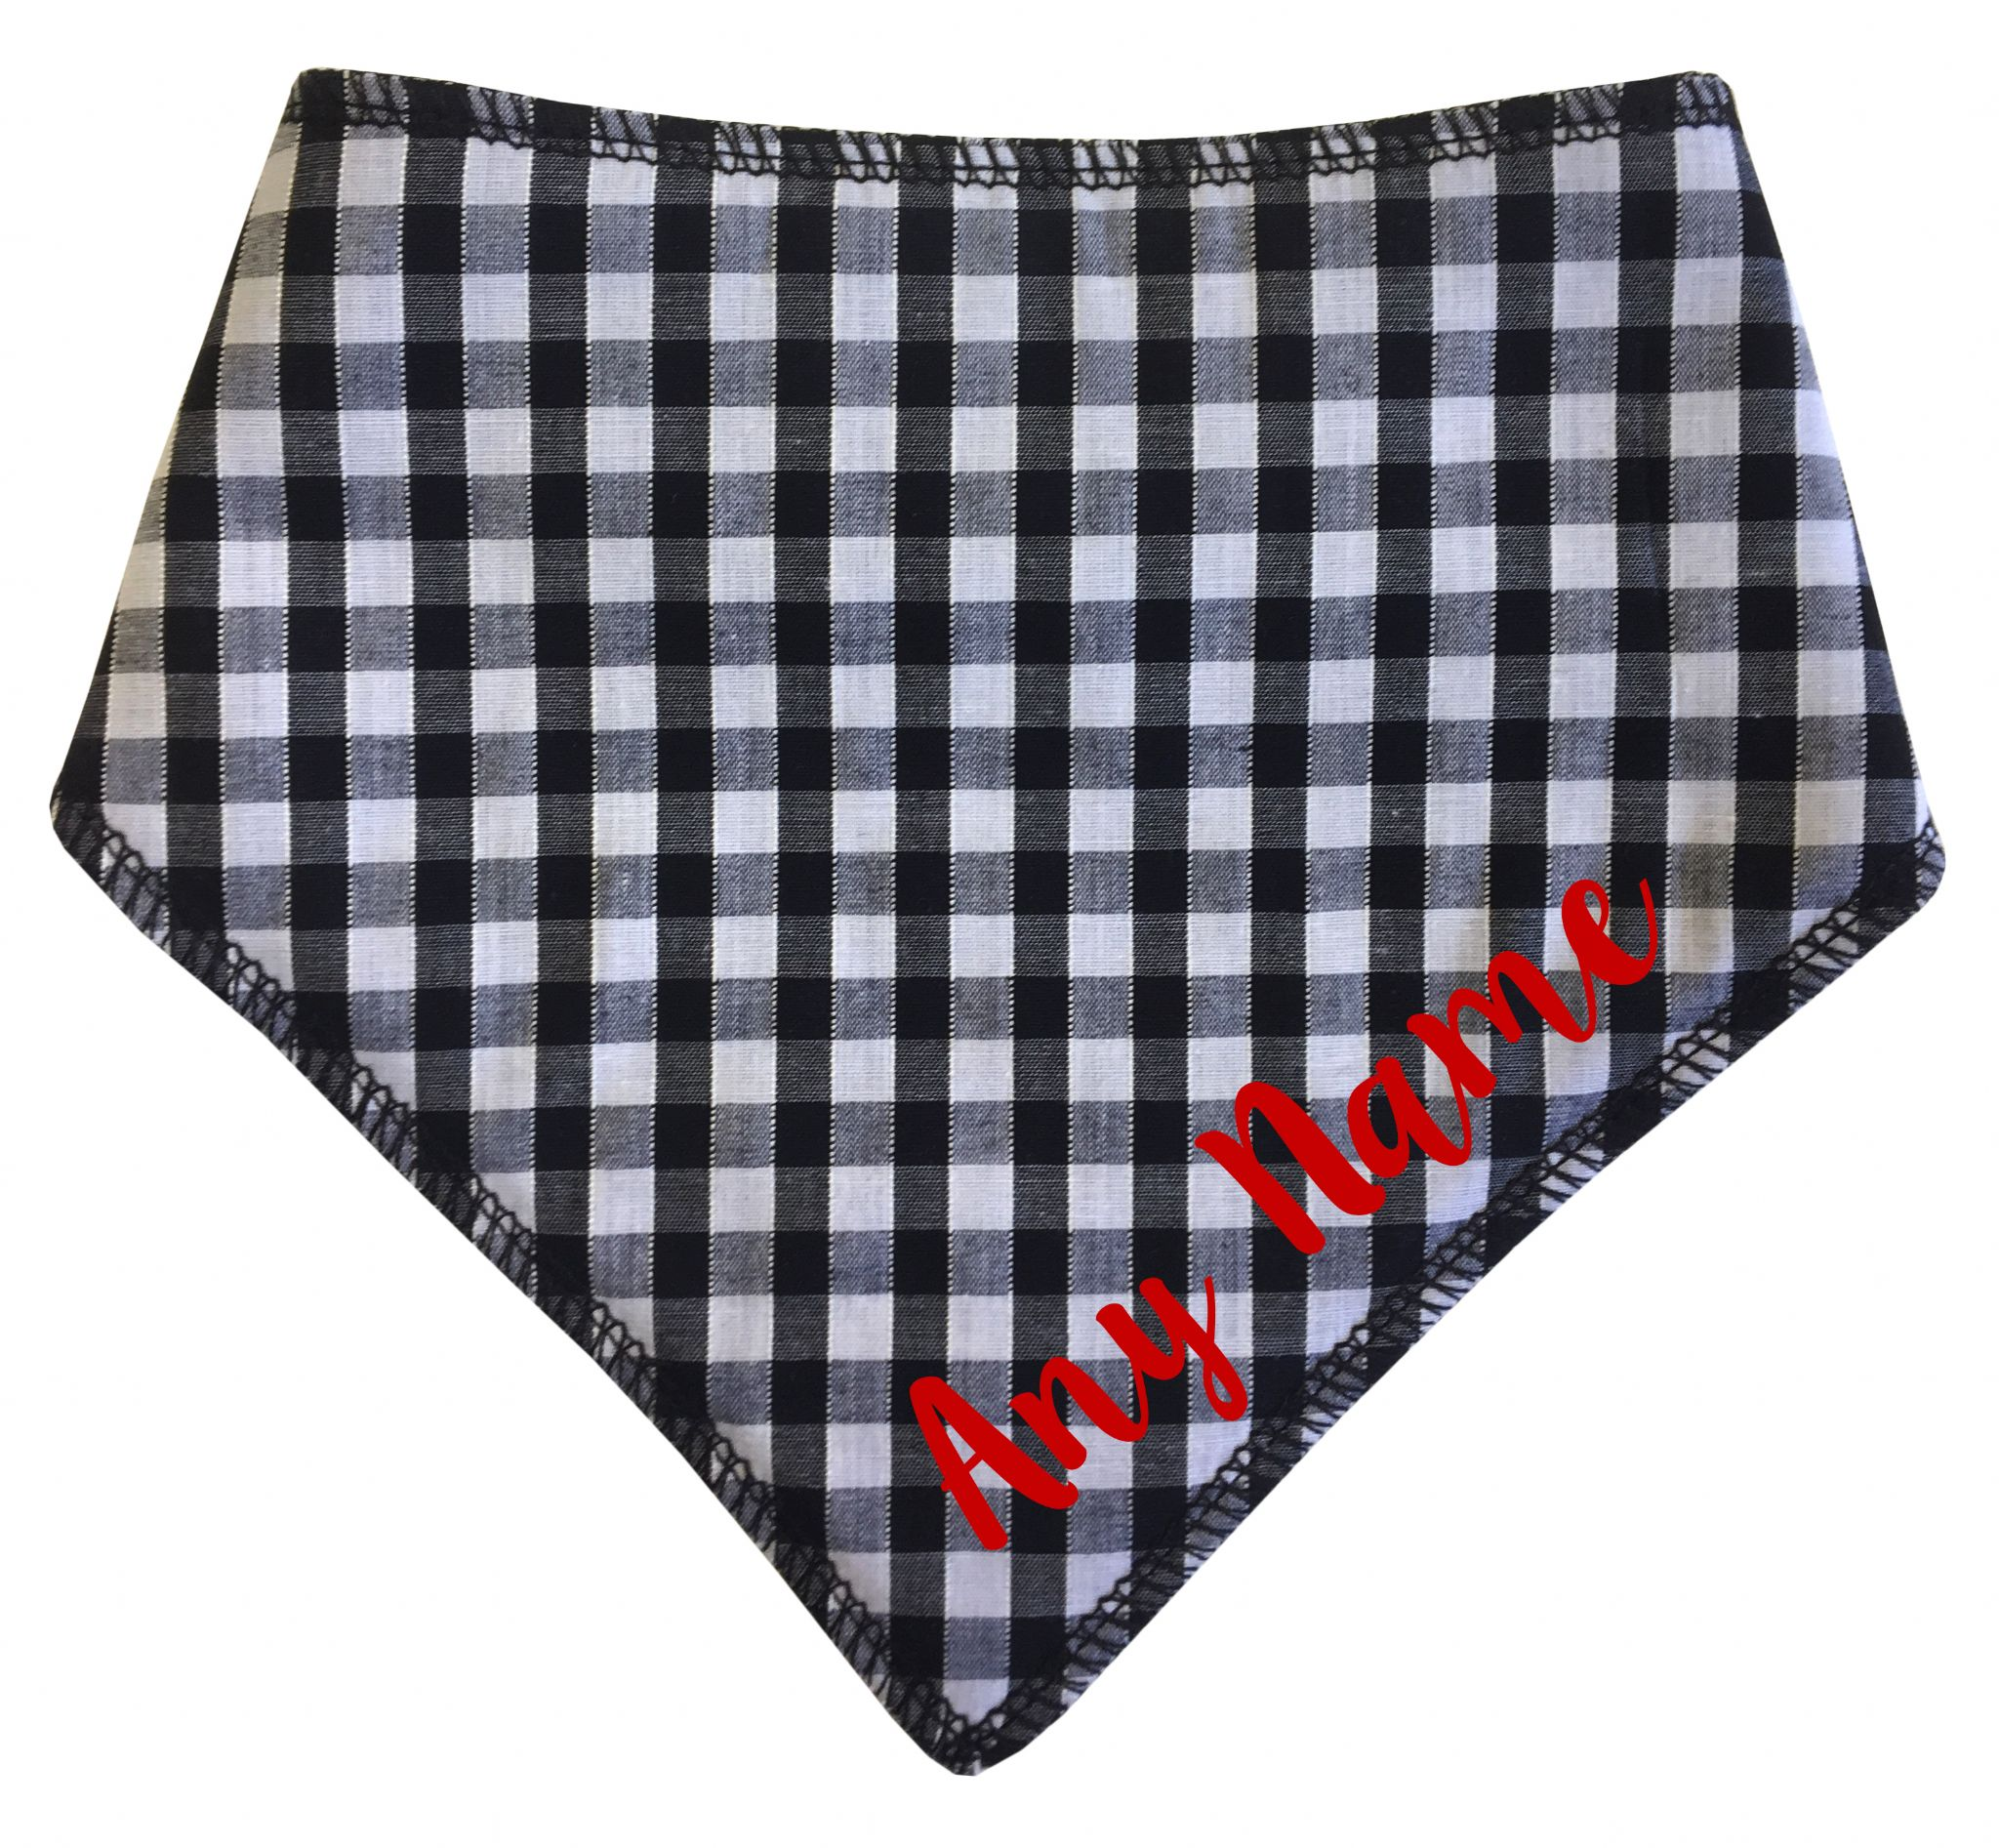 Personalised Black & White Gingham Dog Bandana